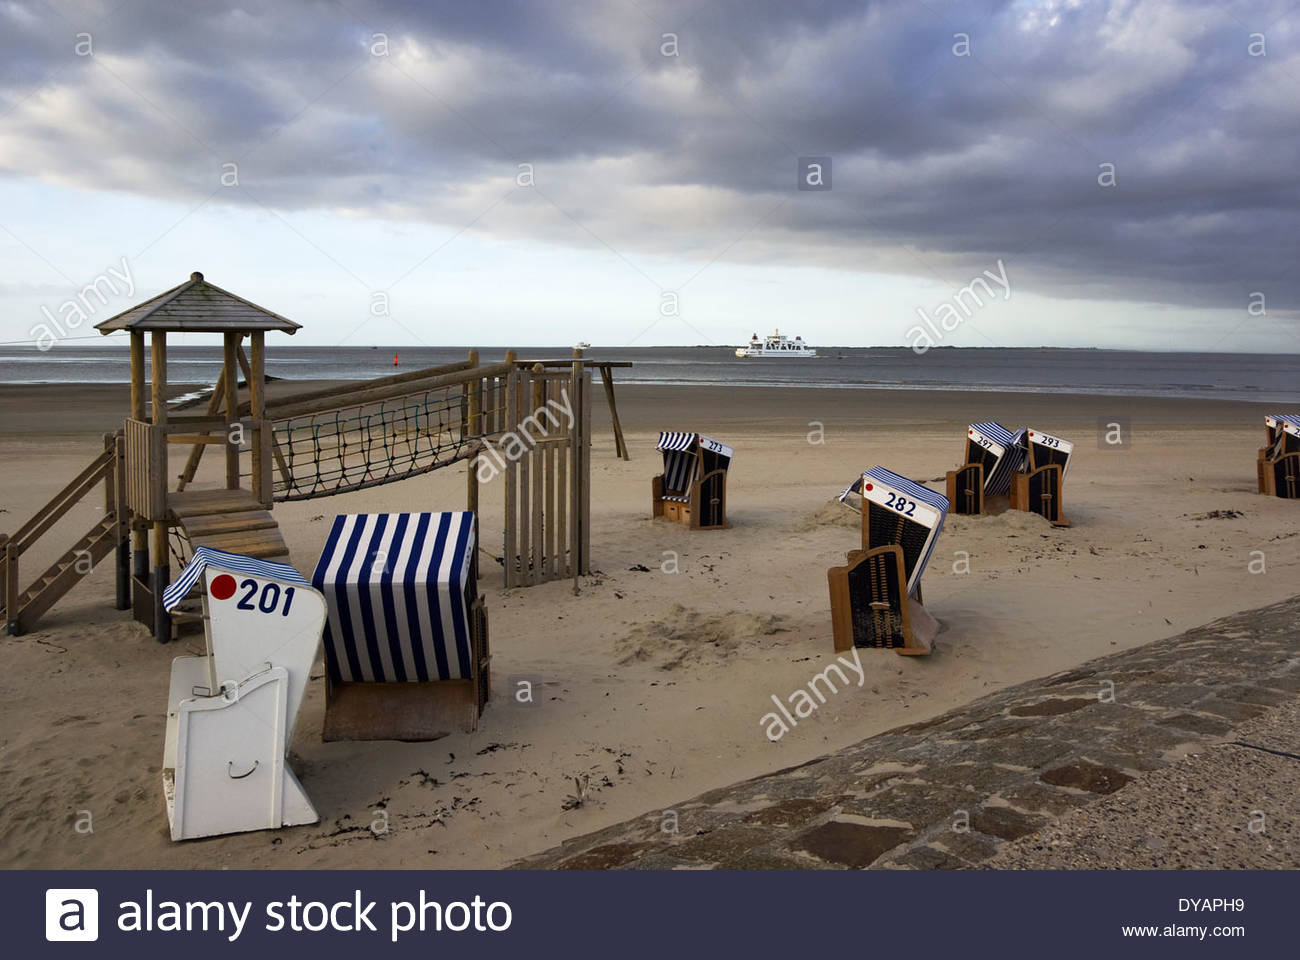 Beach chairs and recreation await the day's vacationing families, as ferries come and go in the distance, Norderney, Stock Photo